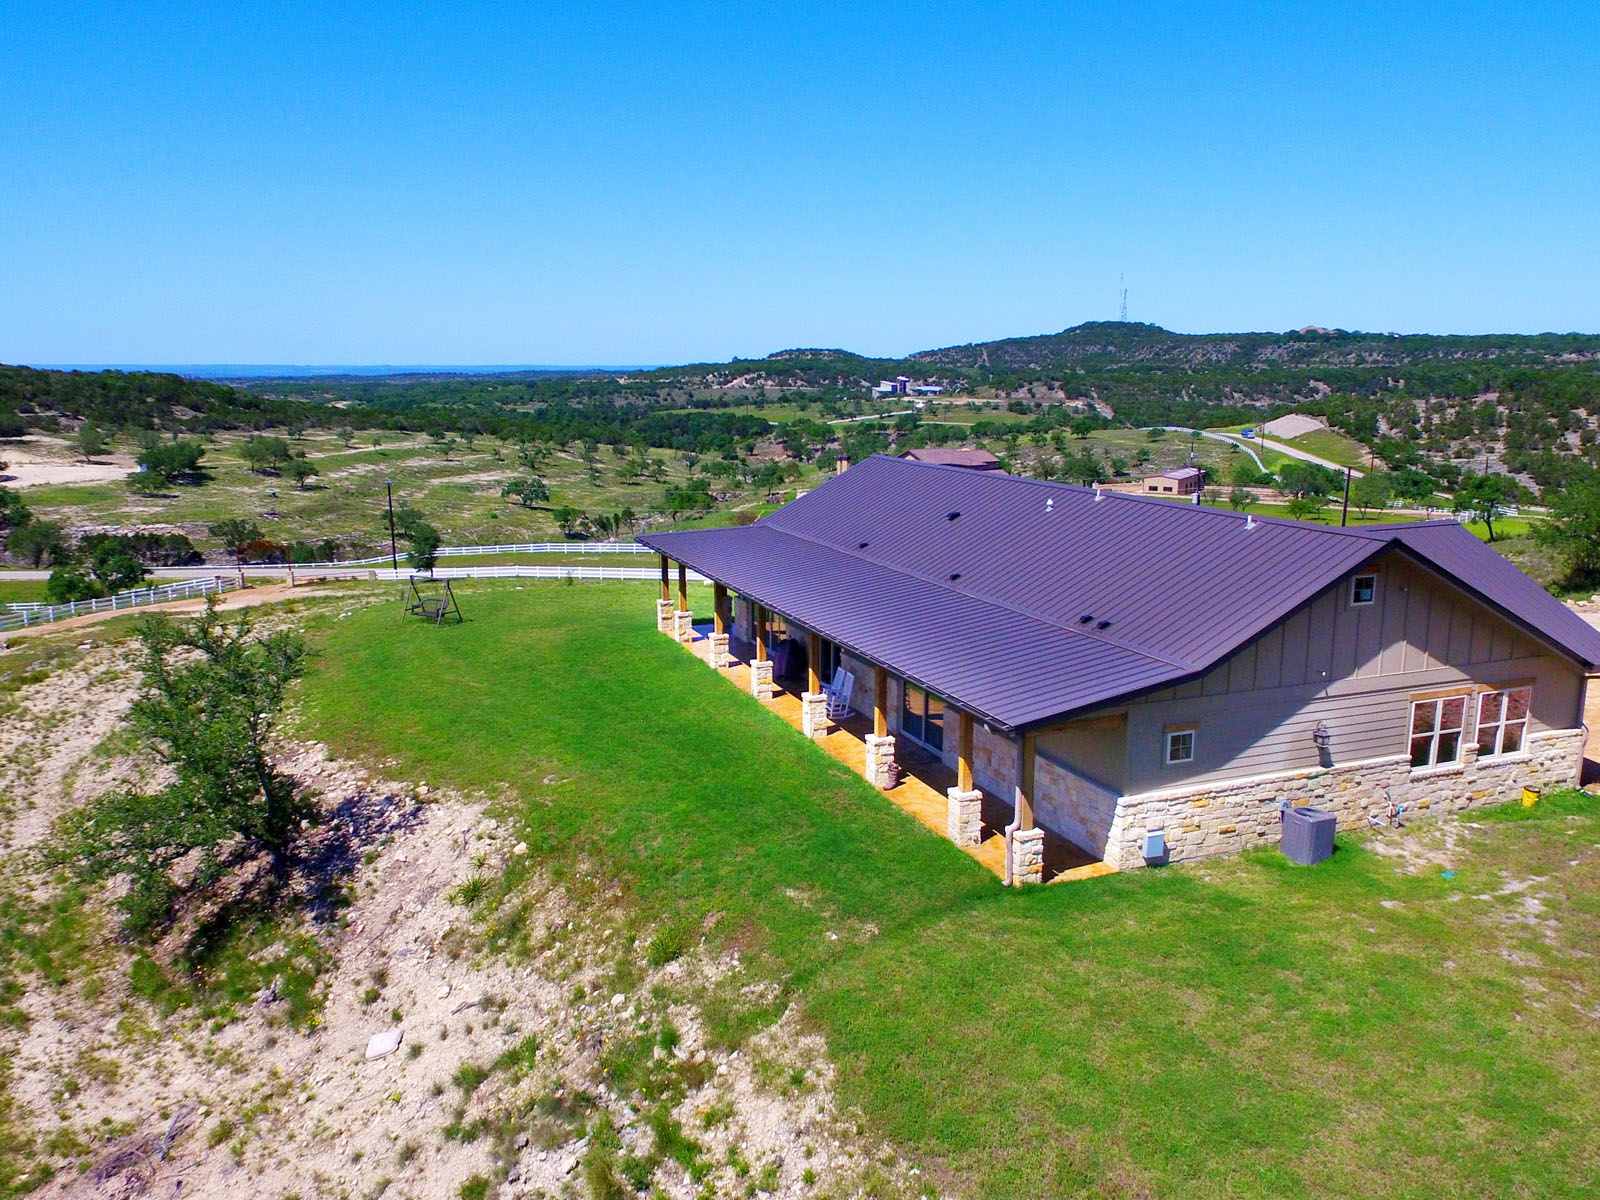 Single Family Home for Sale at Stunning Hill Country Horse Estate 11235 Grand Summit Blvd Dripping Springs, Texas 78620 United States